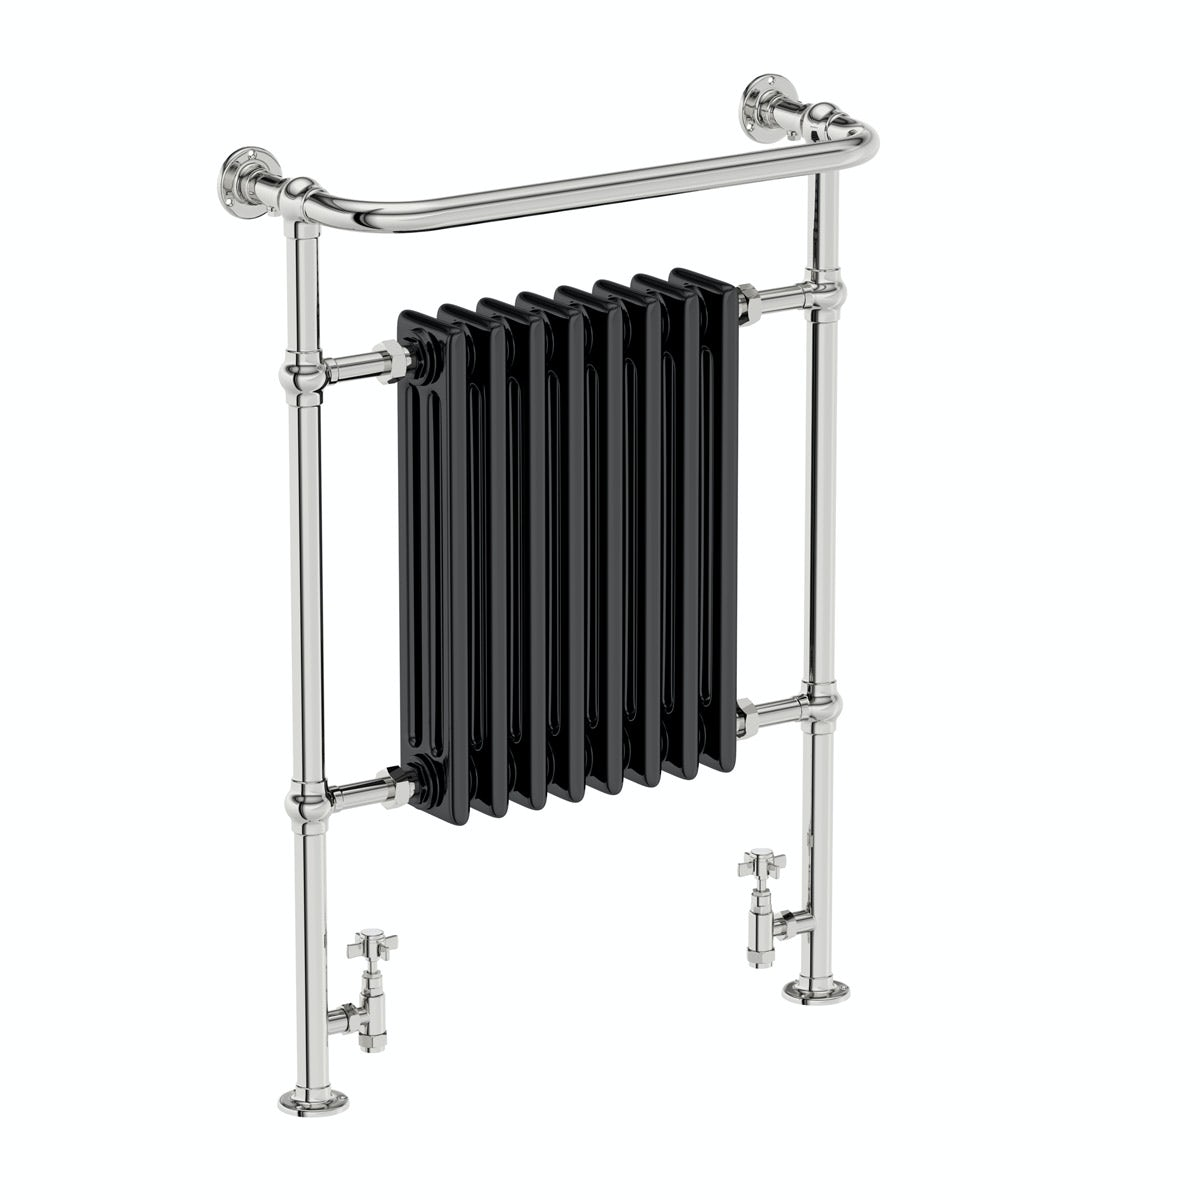 The bath co dulwich black traditional heated towel rail Do heated towel rails heat the bathroom